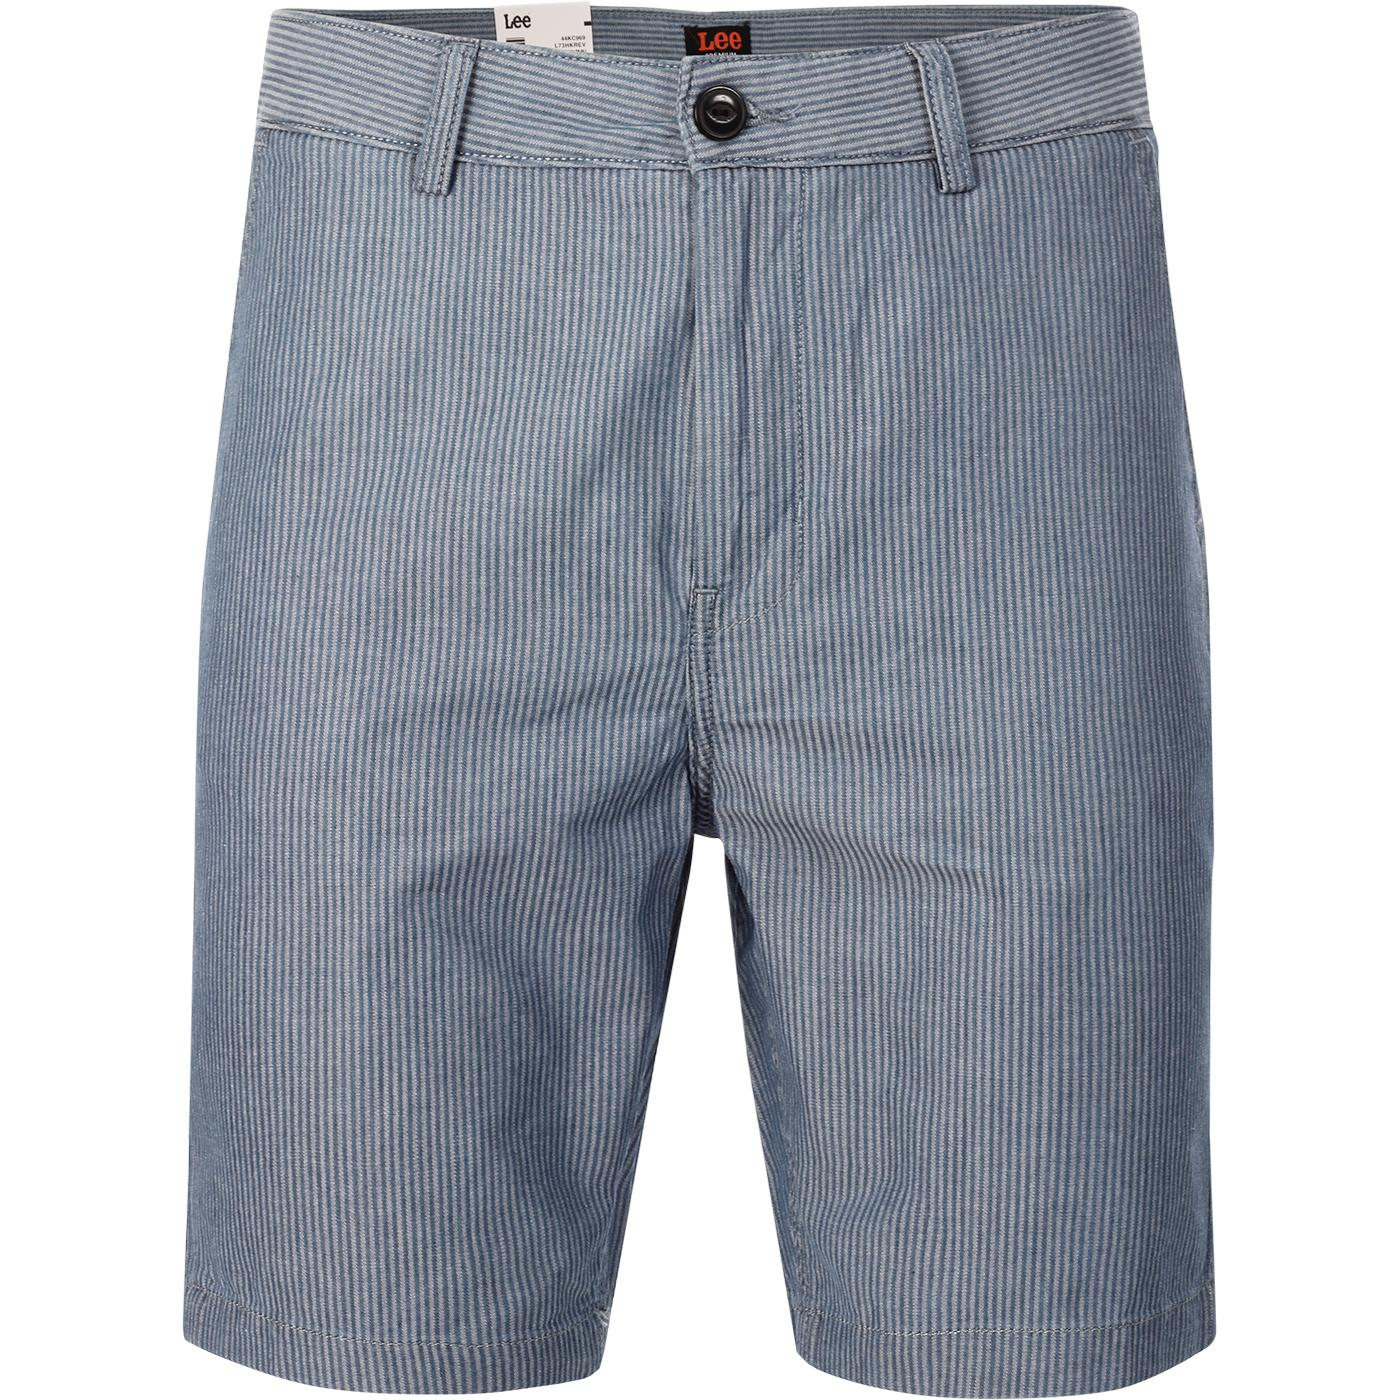 LEE Men's Retro Pinstripe Chino Shorts (Indigo)